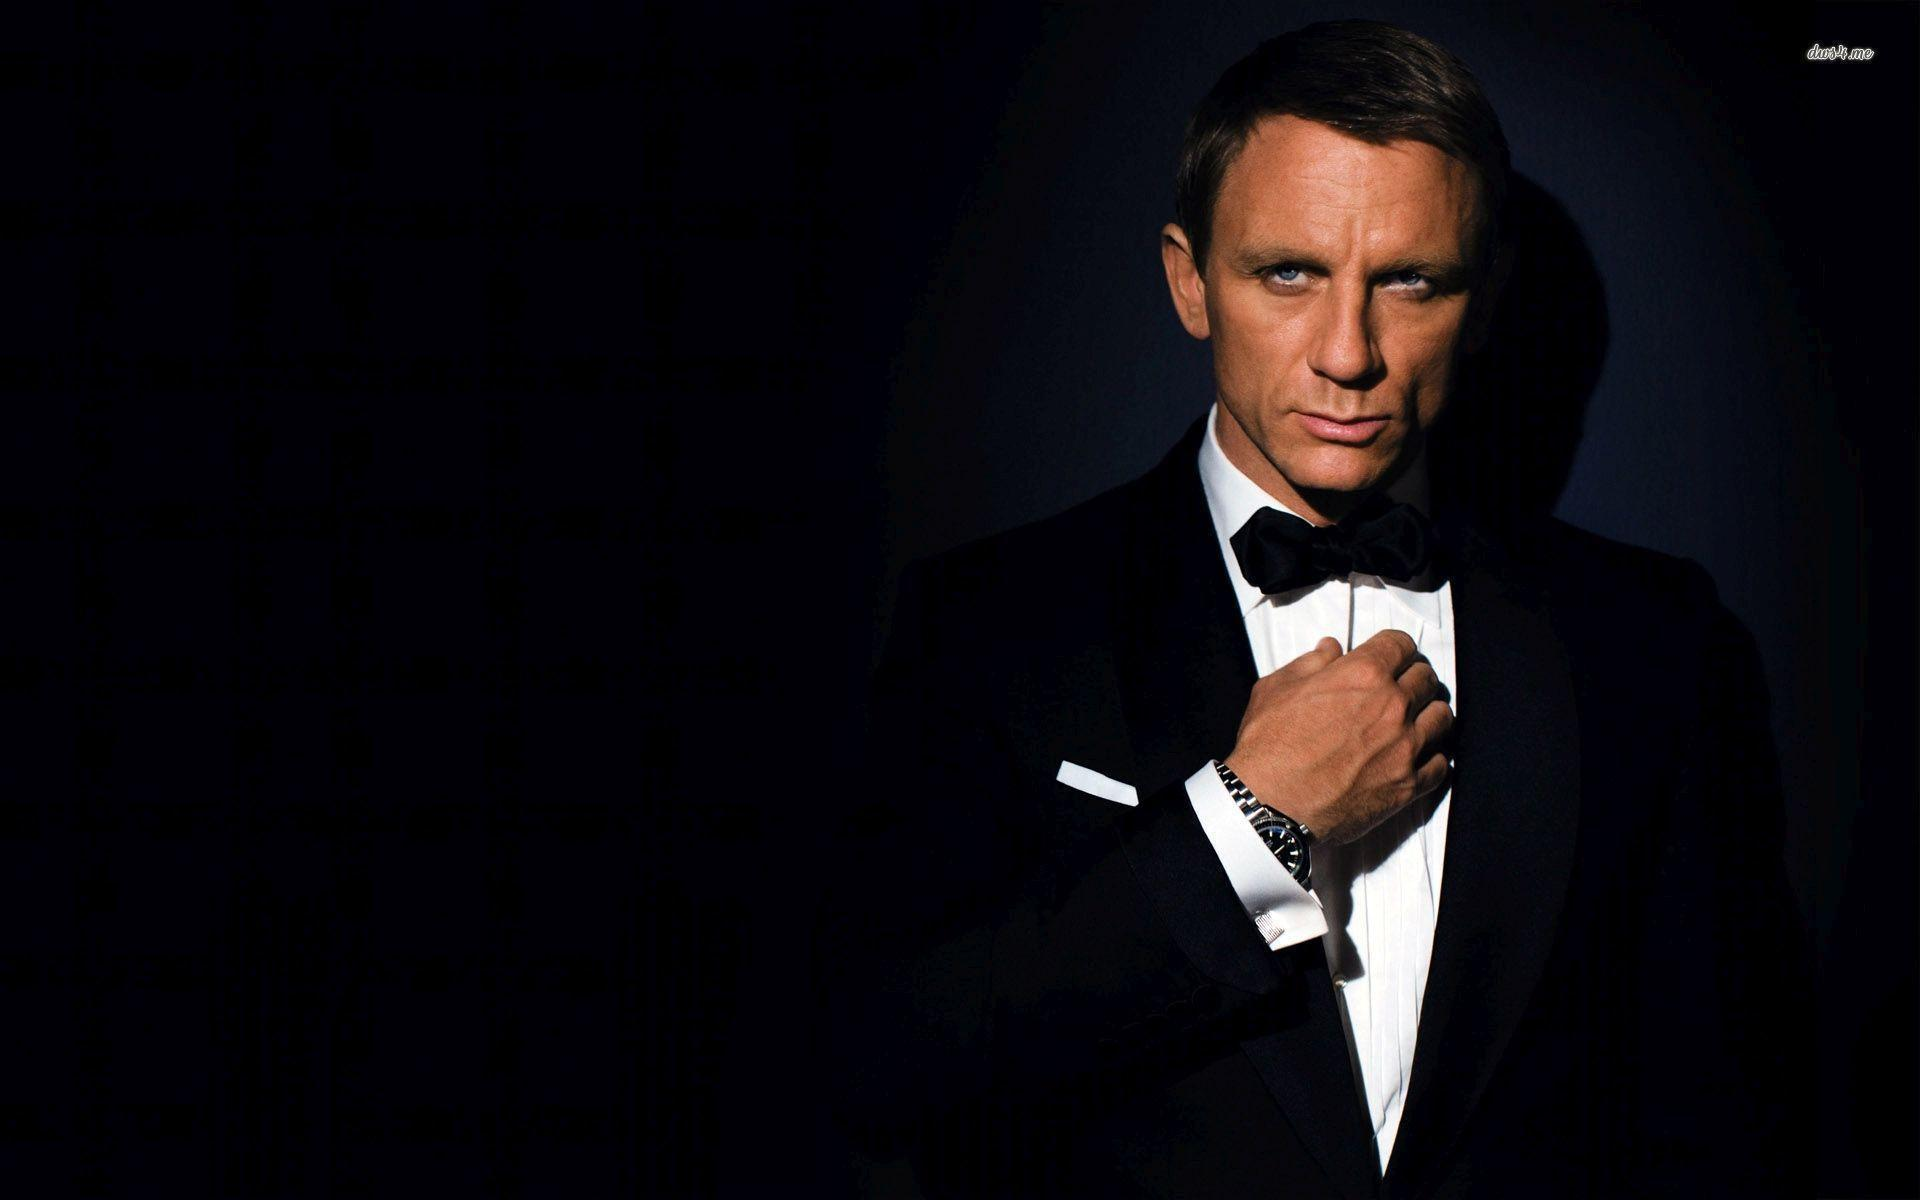 James bond wallpapers wallpaper cave - James bond images hd ...